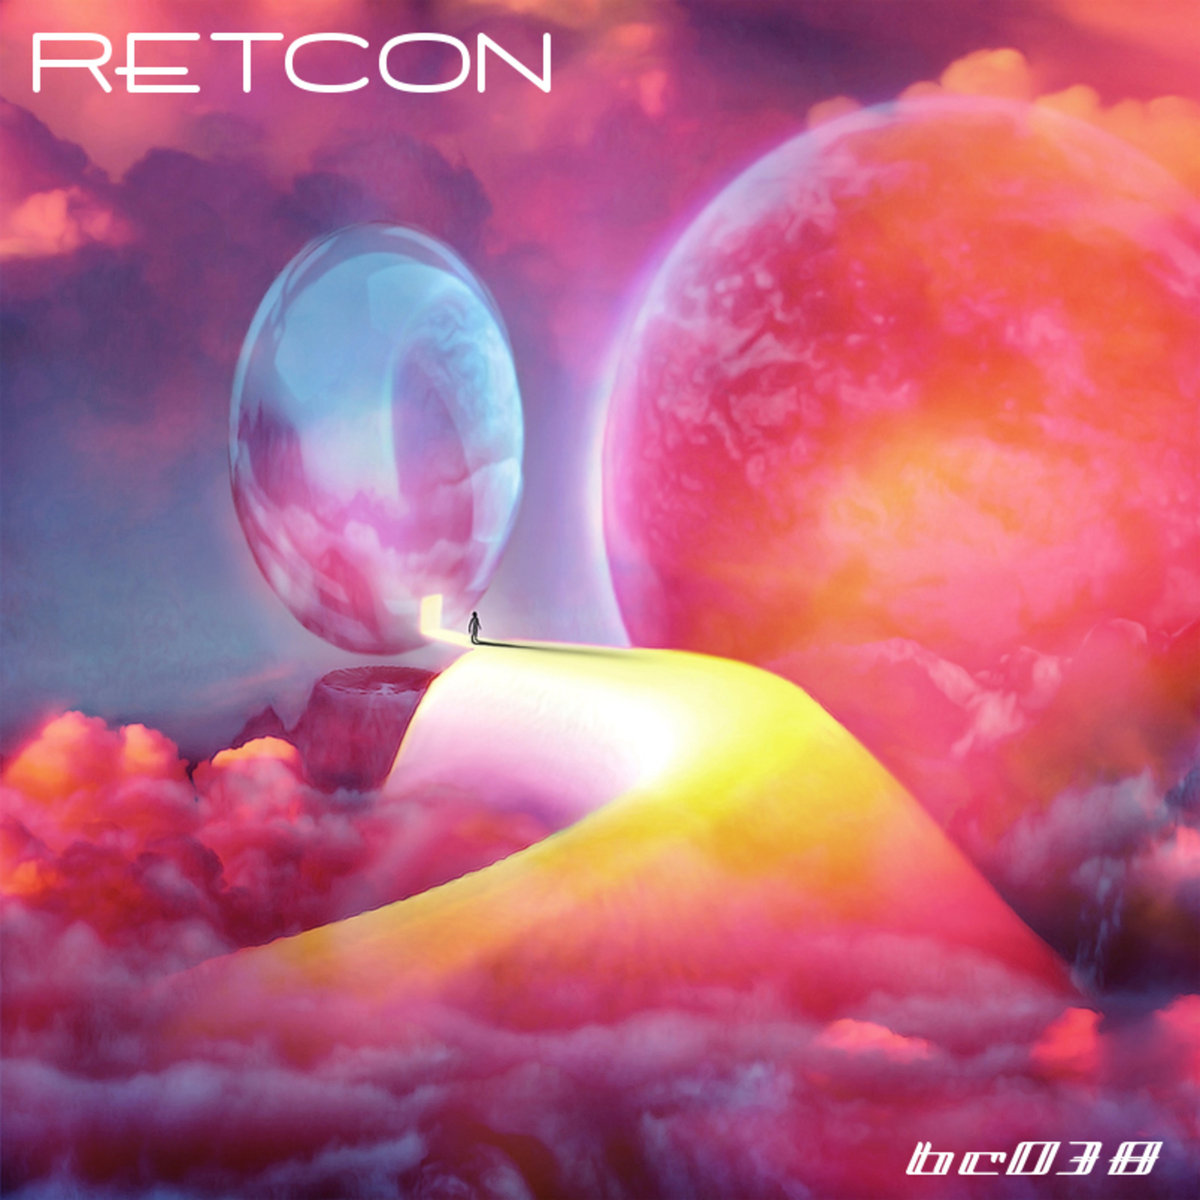 Retcon Review - Various Artists - Retcon (Bricolage)